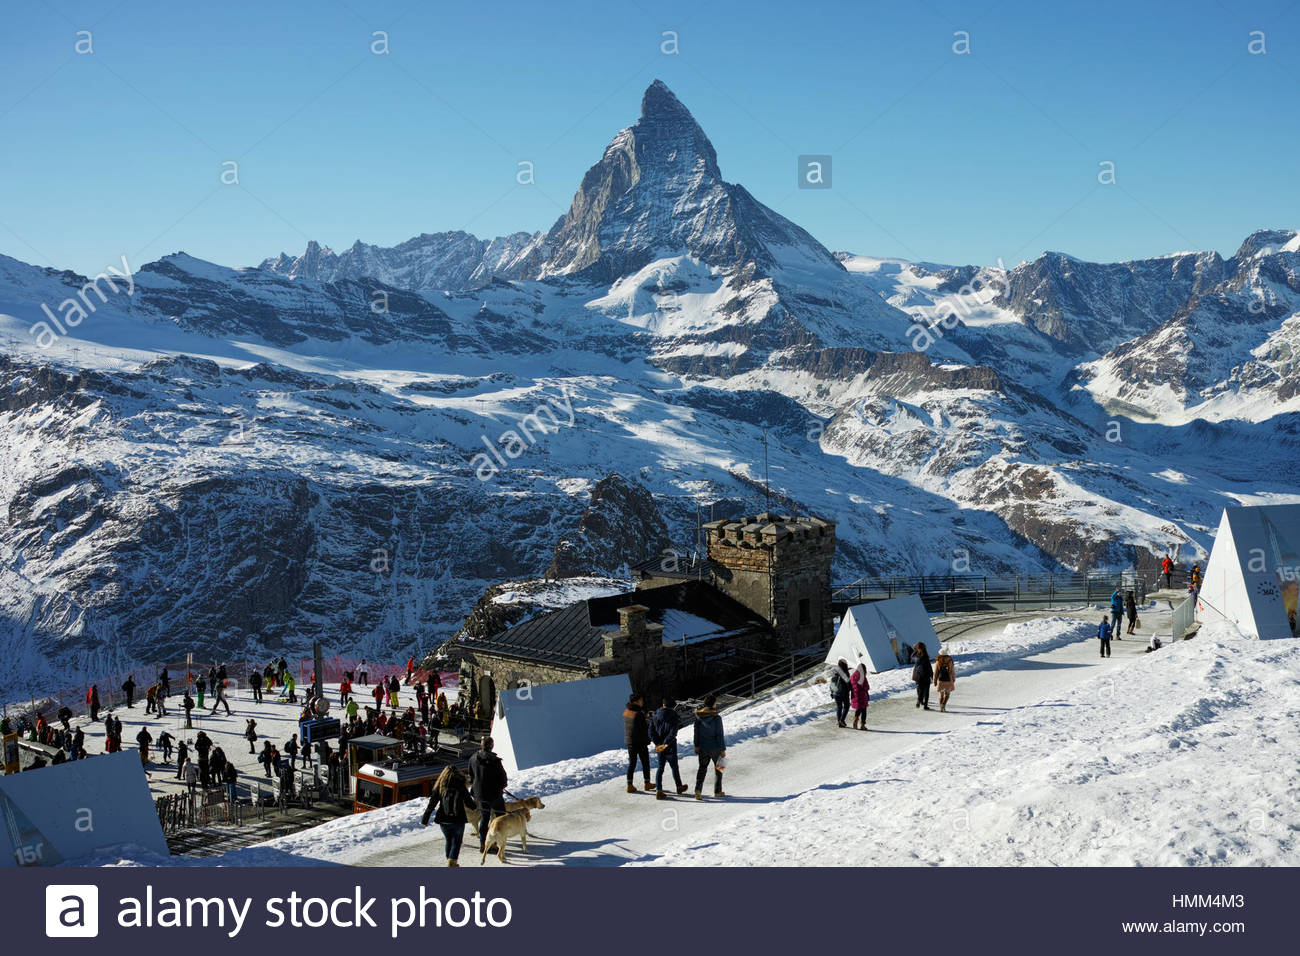 a-view-of-the-matterhorn-from-gornergrat-railway-station-switzerland-HMM4M3.jpg